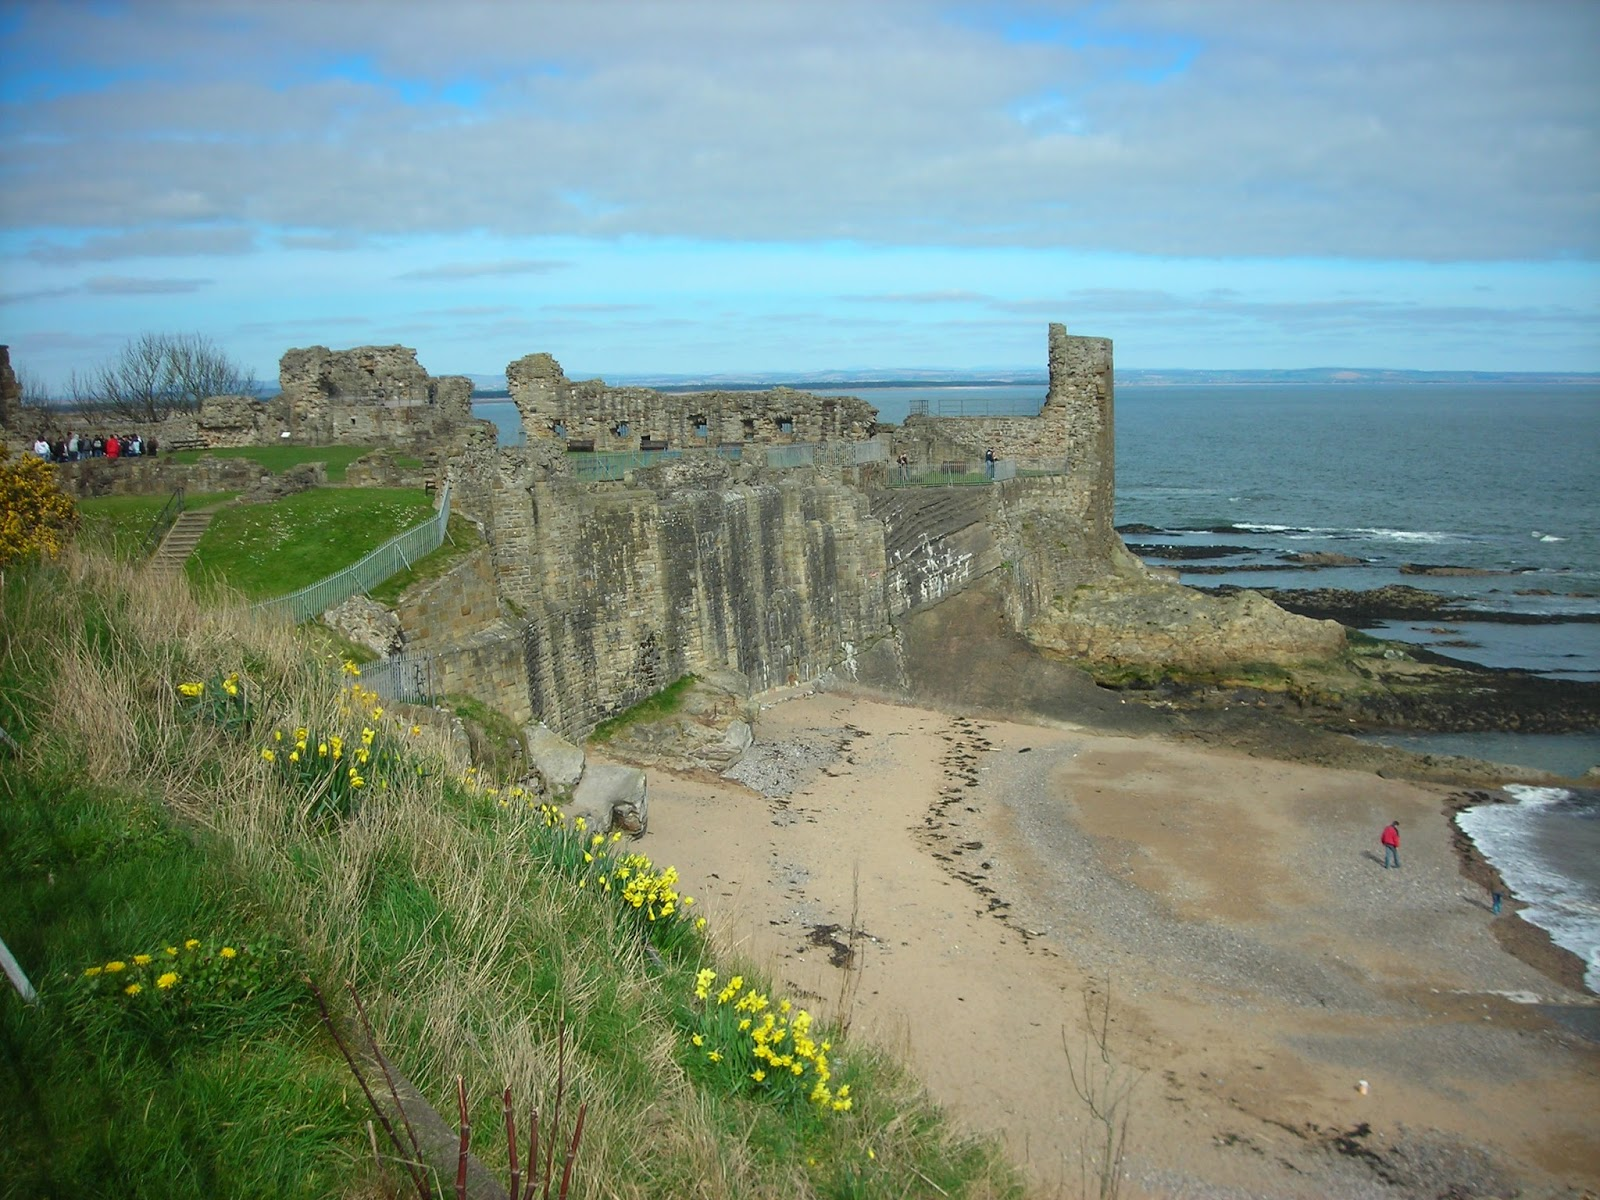 St Andrews castle ruins